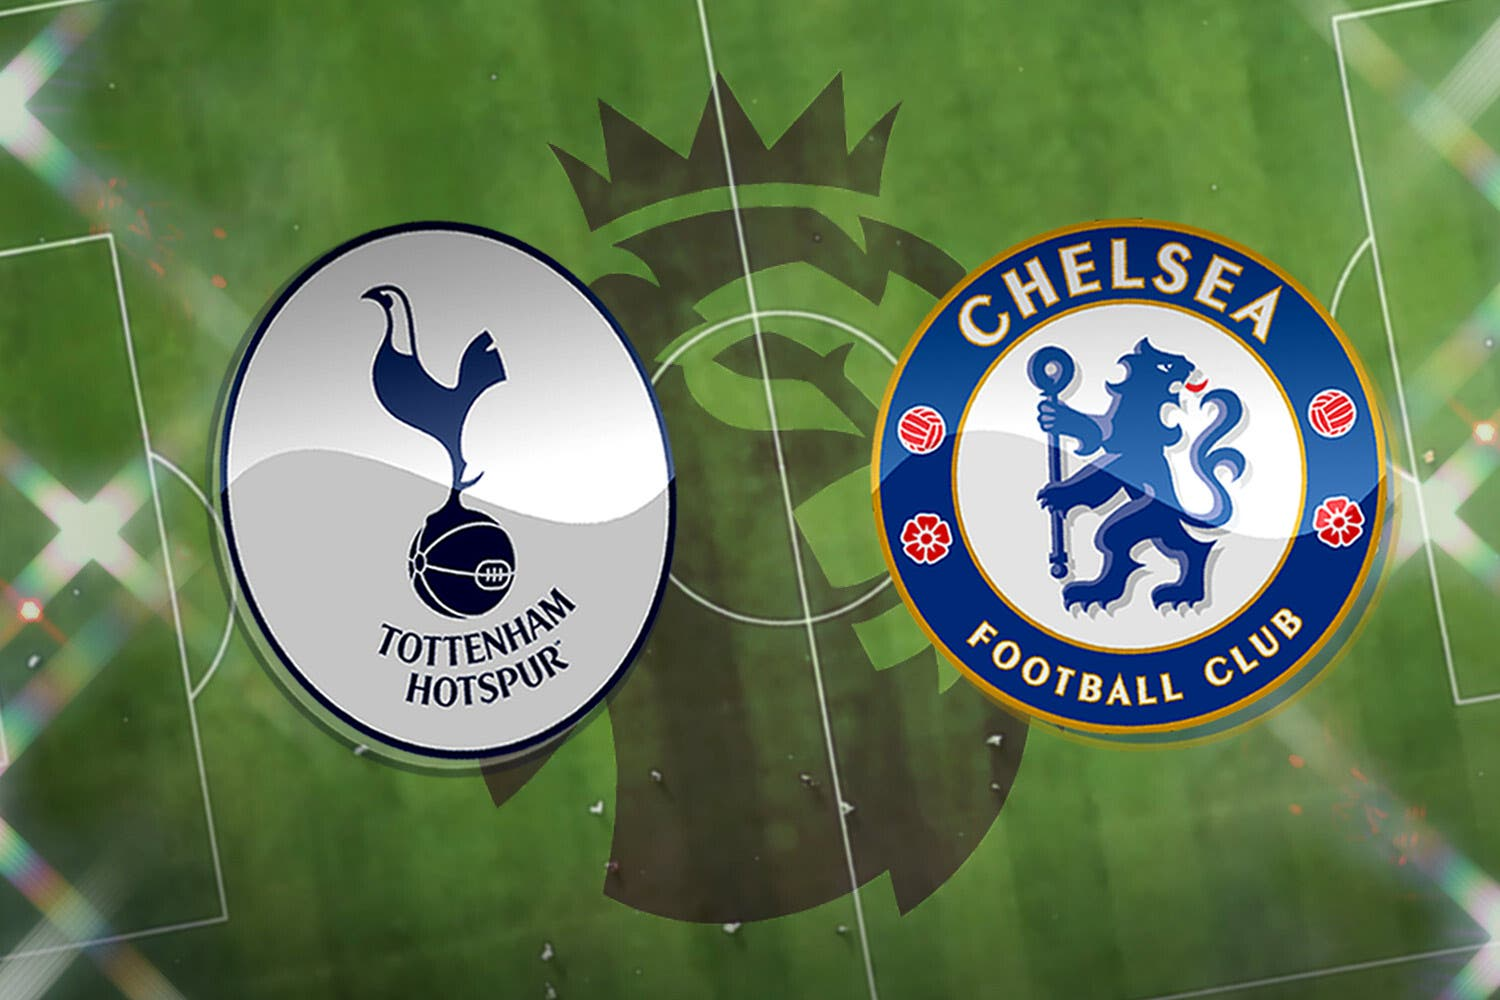 Spurs vs Chelsea predictions: Expert view and key questions answered on Mourinho vs Tuchel and more